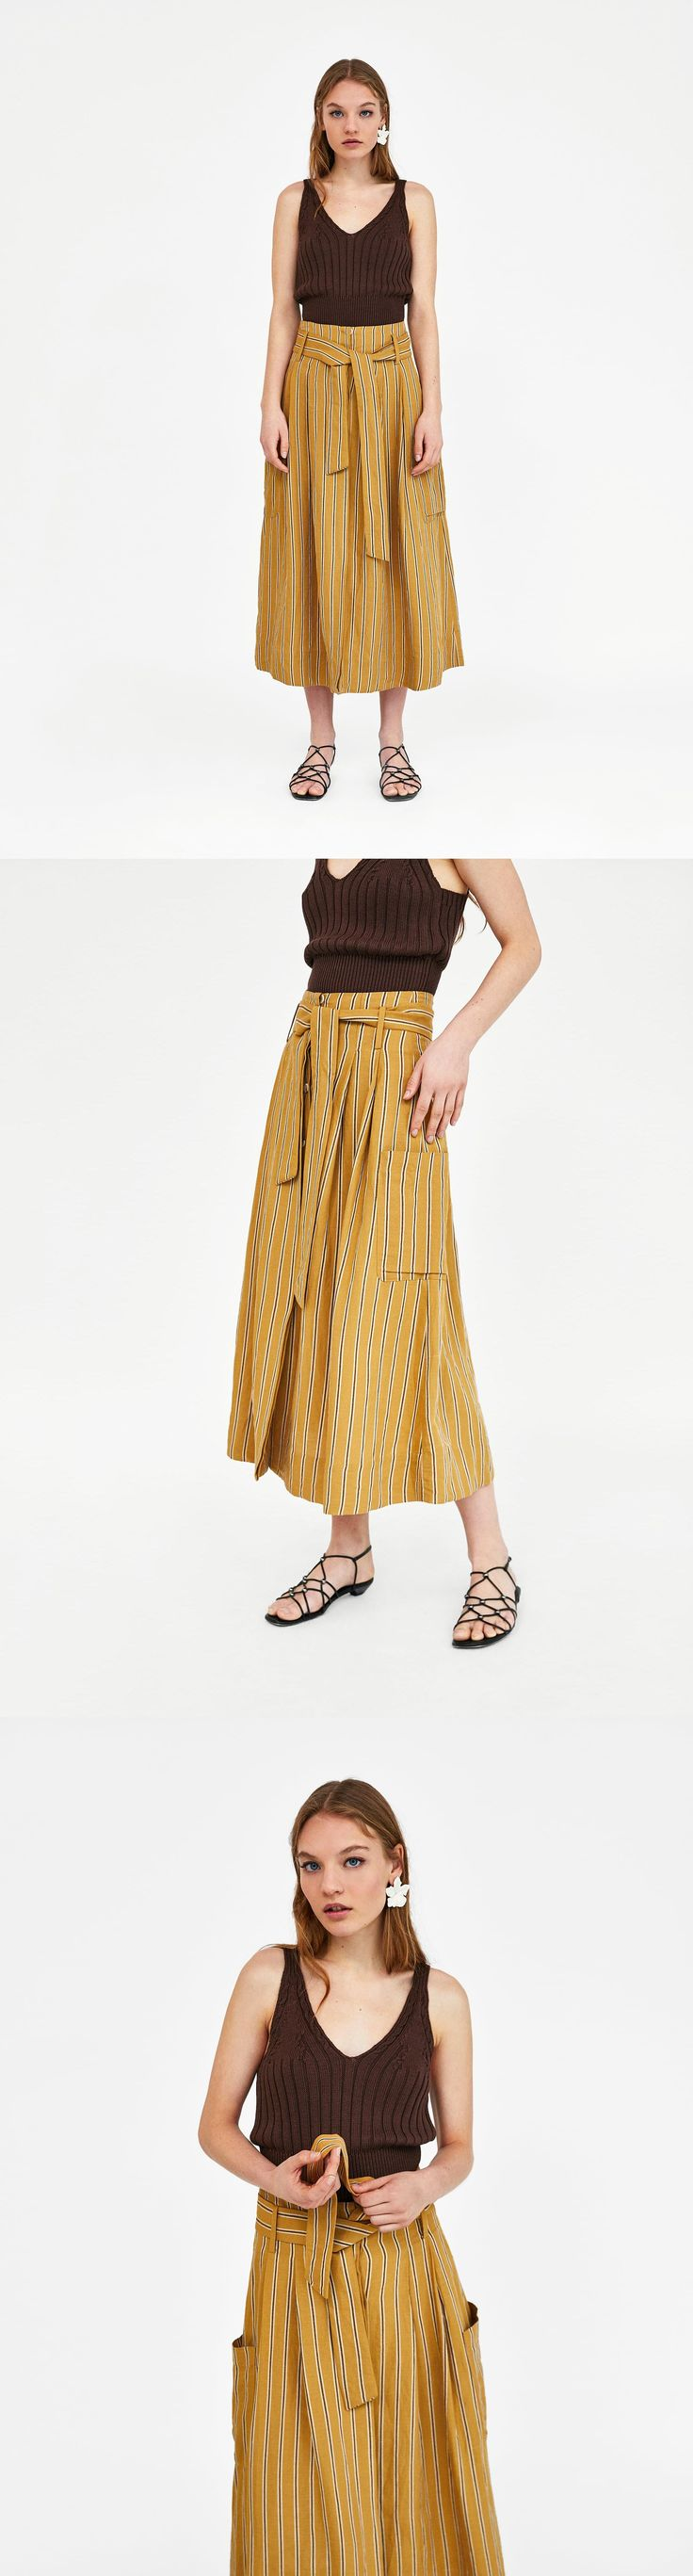 Linen Skirt With Bow Detail // 69.90 USD // Zara // High waist midi skirt with a bow detail in matching fabric. Features side patch pockets, front pleats, a wide A-line silhouette and button fastening in the front hidden by a placket. HEIGHT OF MODEL: 178 cm. / 5′ 10″